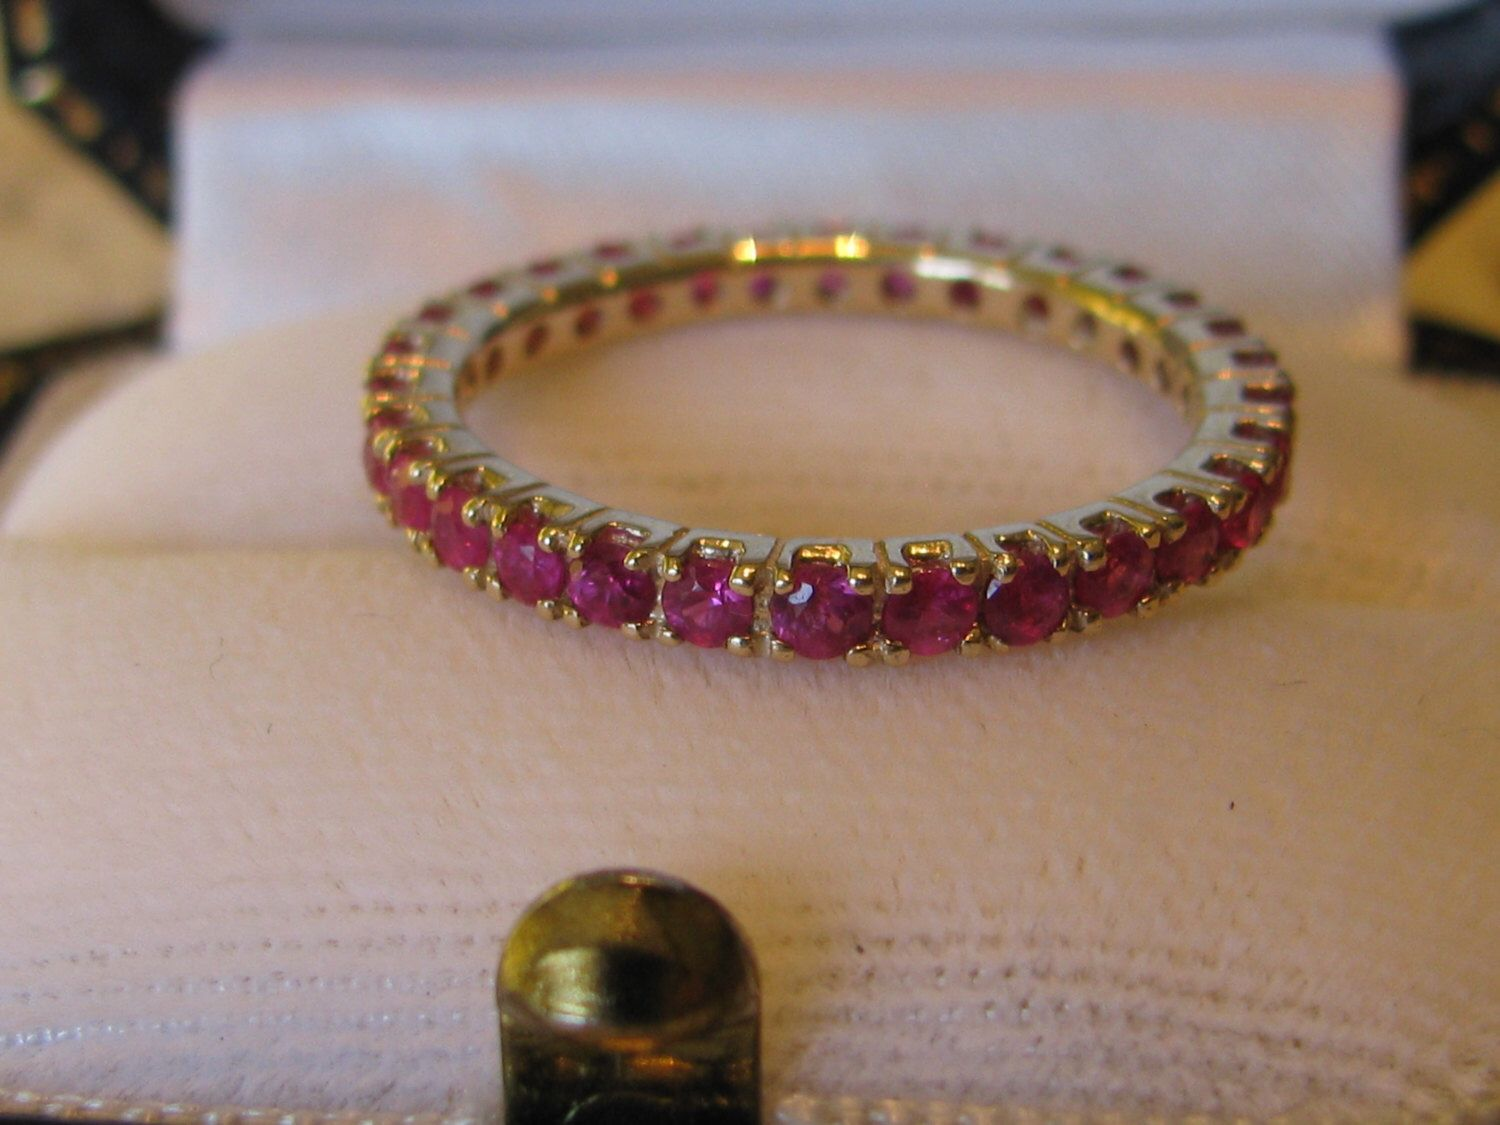 Natural Ruby Eternity Band Ring 1.00 Full Carat in Yellow Gold Size 7 by RozieTreasures on Etsy https://www.etsy.com/listing/463233505/natural-ruby-eternity-band-ring-100-full